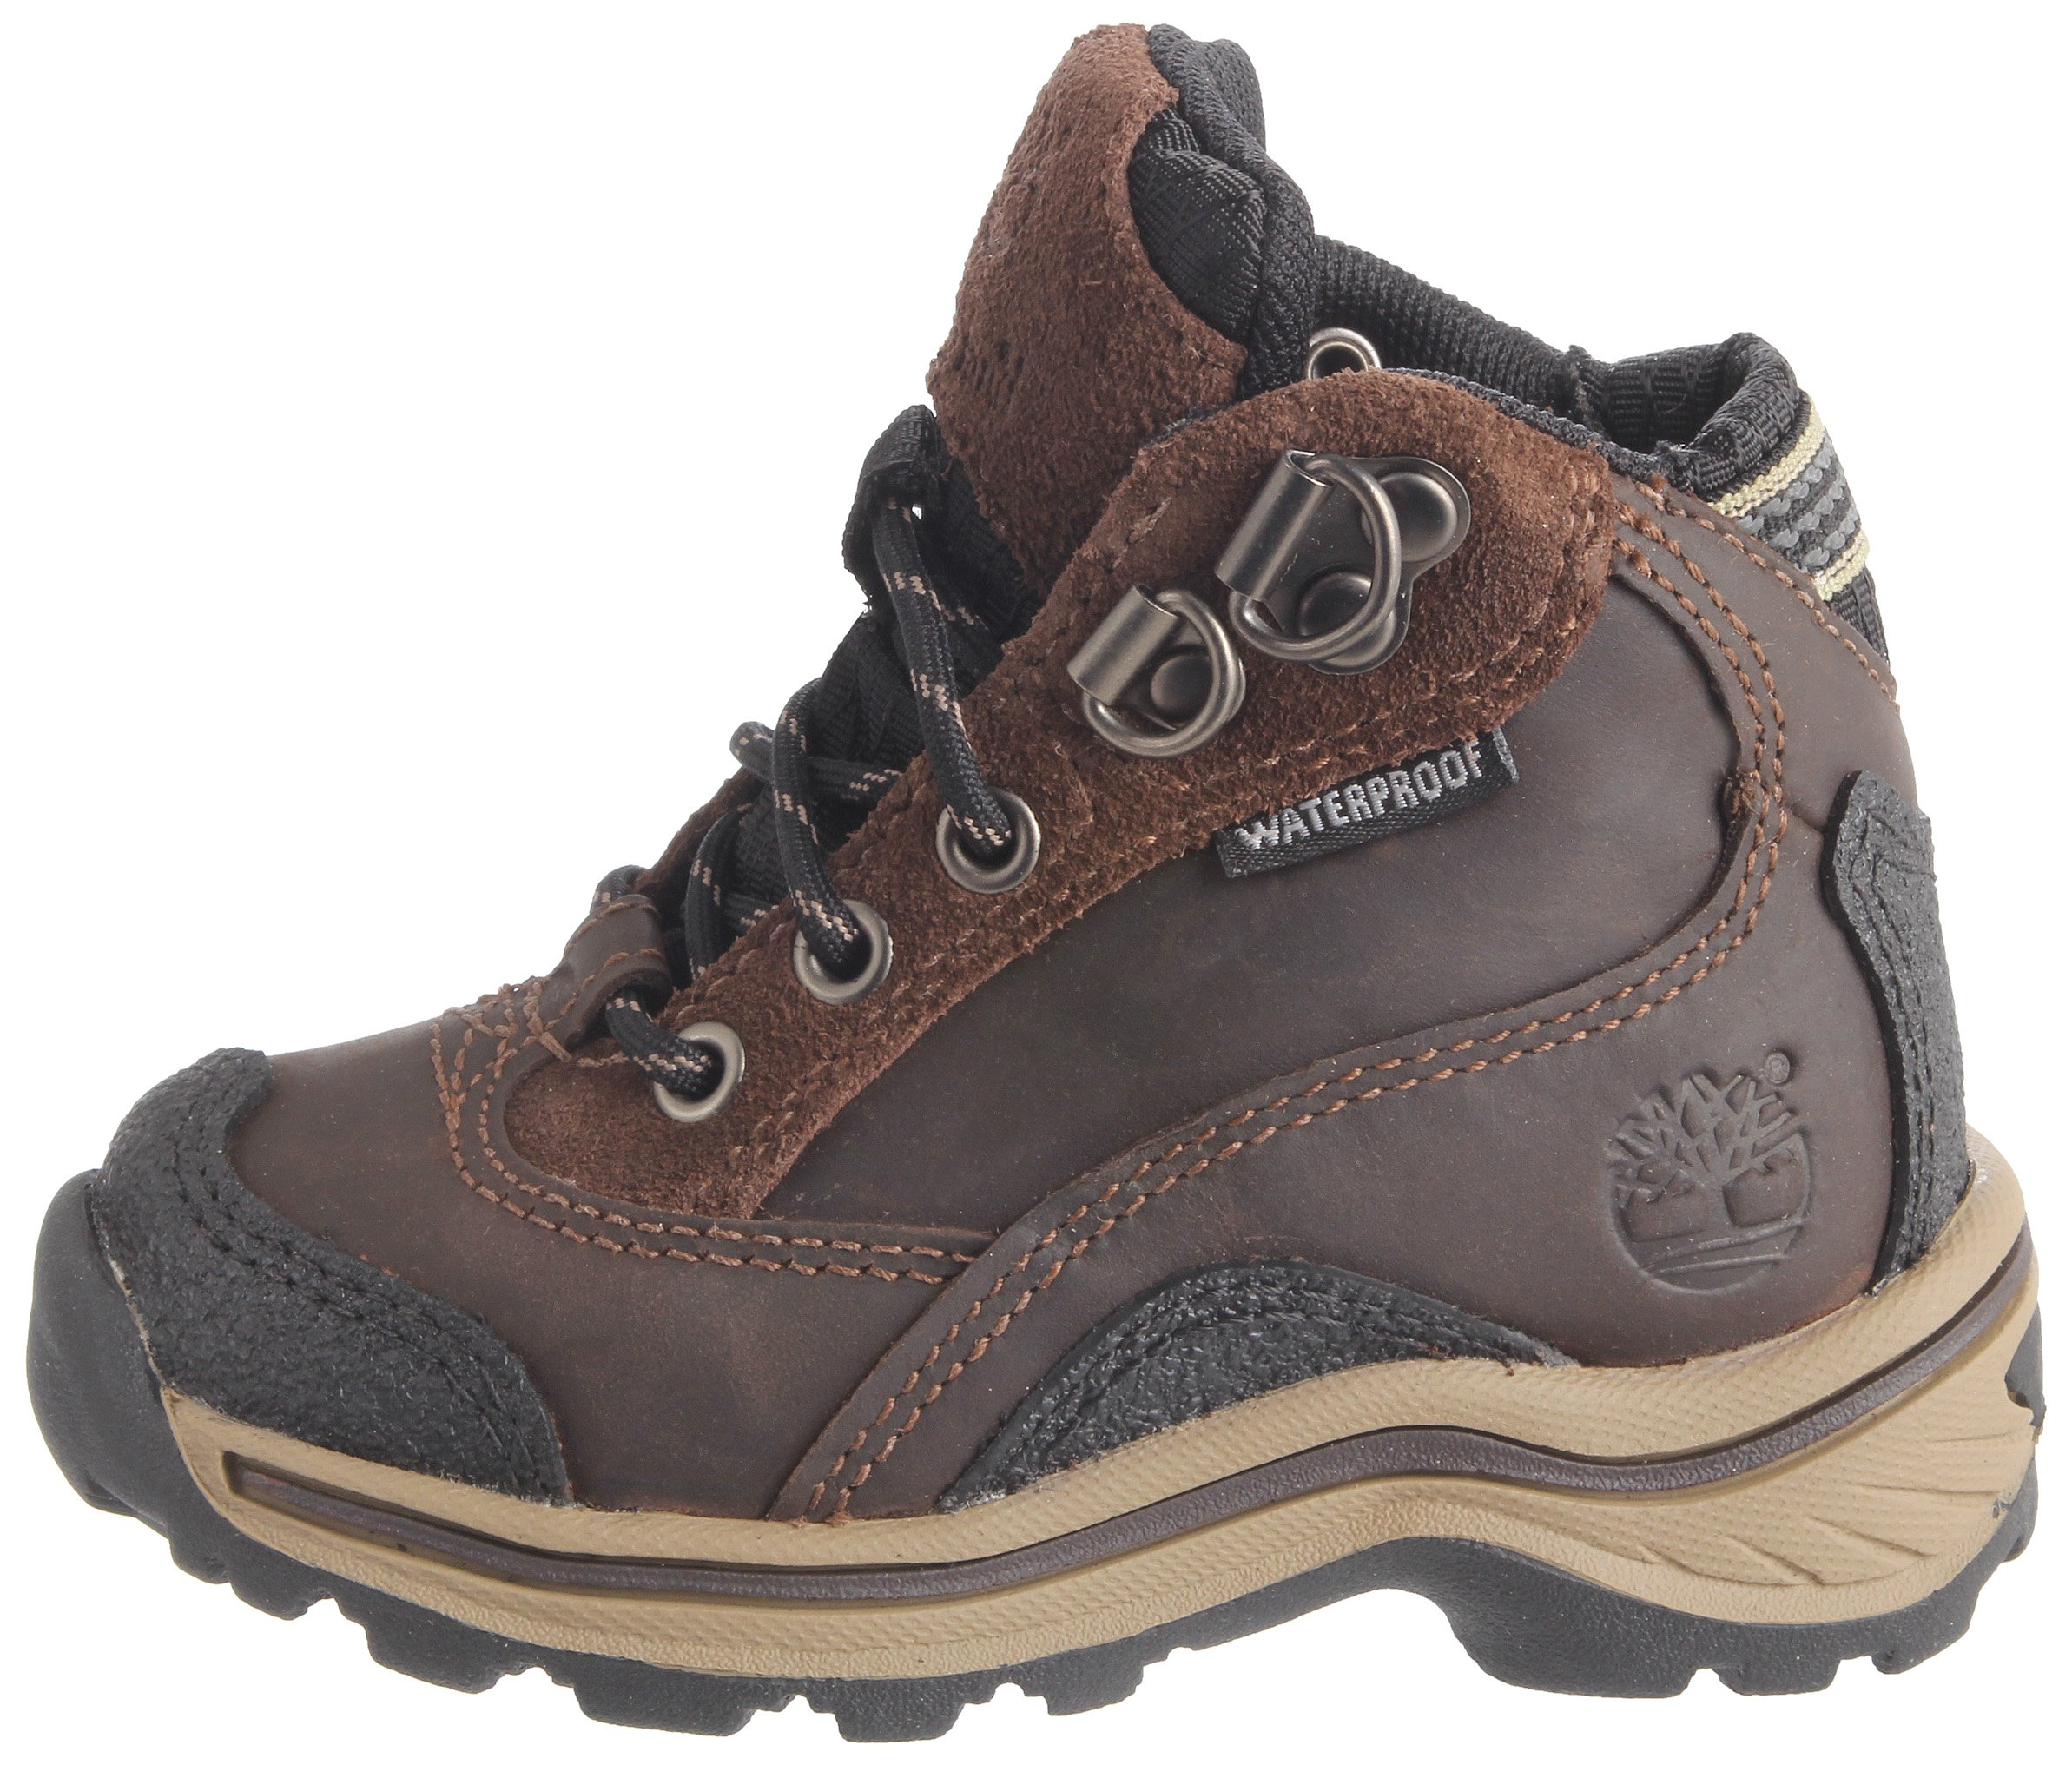 Timberland Pawtuckaway, Unisex-Child Hiking Shoes 5